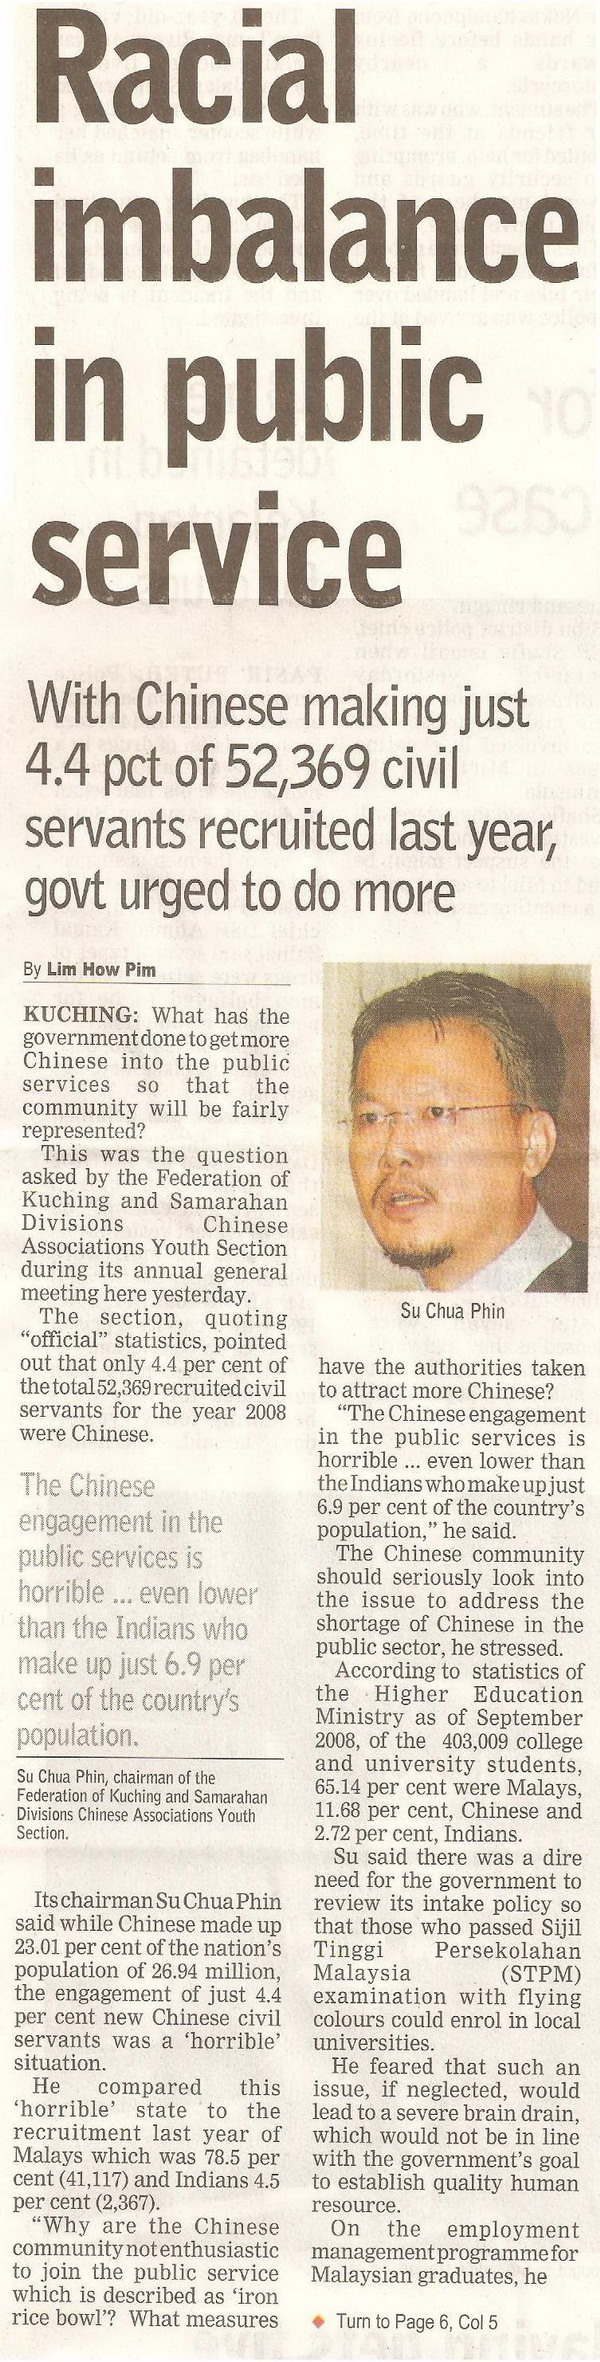 Borneo Post. 2009. Racial imbalance in public service. April 13, 2009 Edition.